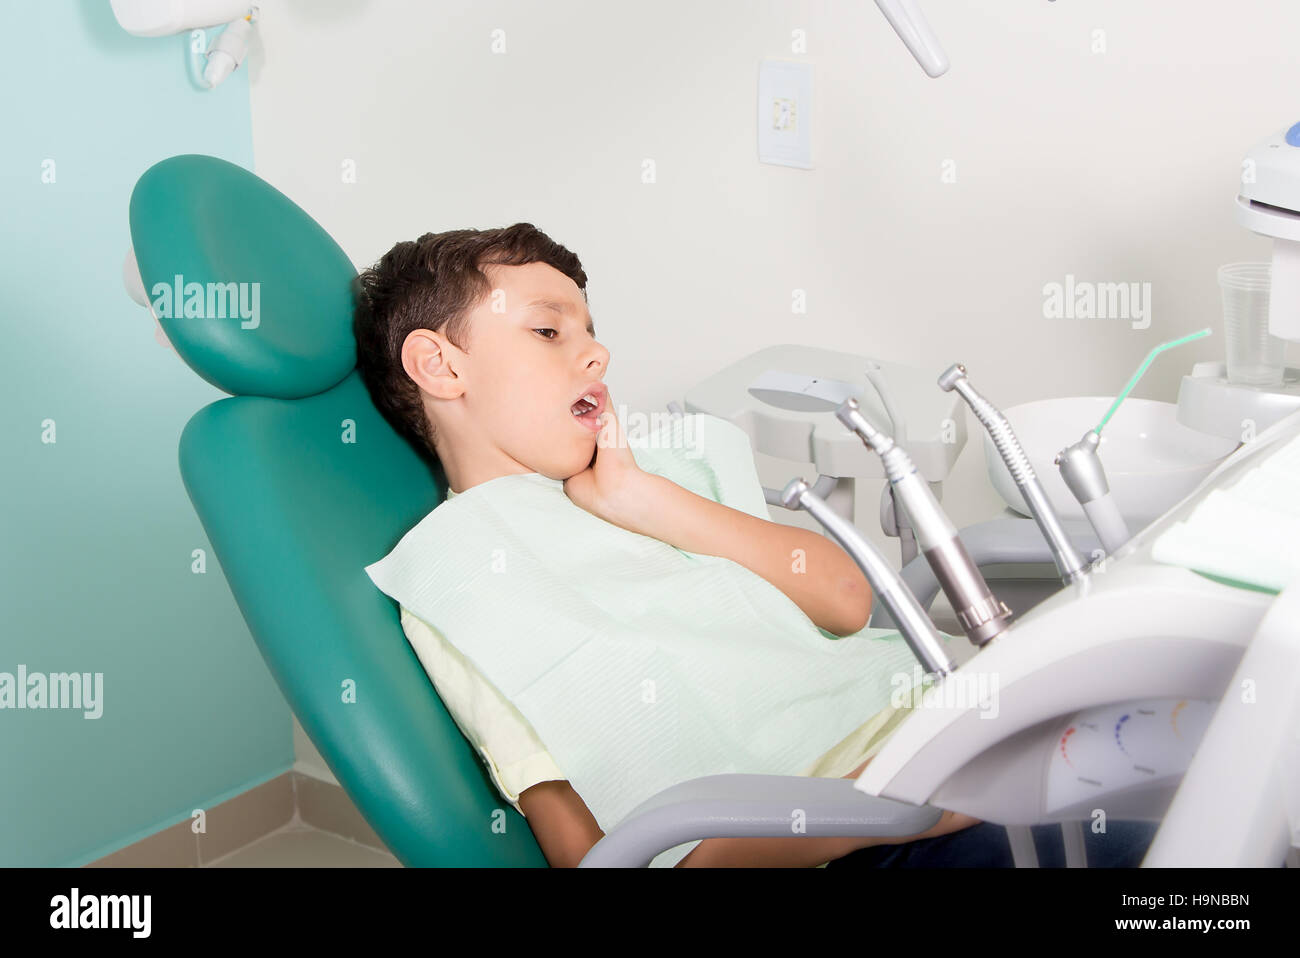 Pleasant Little Kid Feeling Pain While Sitting At Dental Clinic Stock Beatyapartments Chair Design Images Beatyapartmentscom